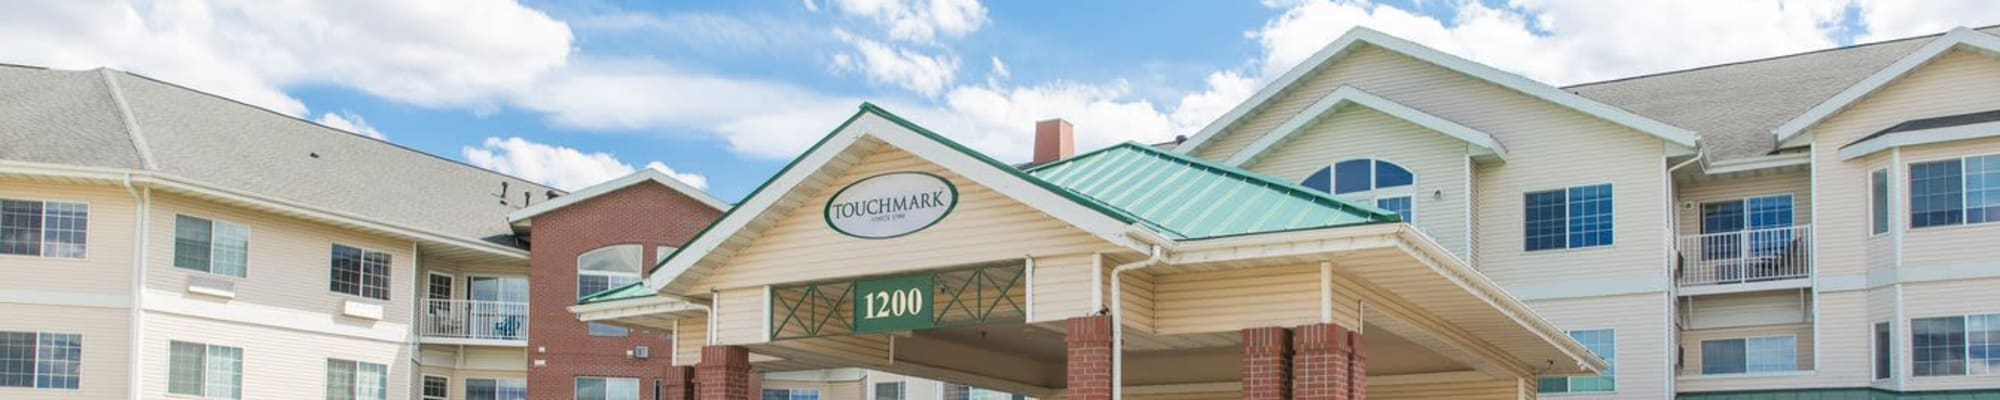 Services and amenities at Touchmark at Harwood Groves in Fargo, North Dakota